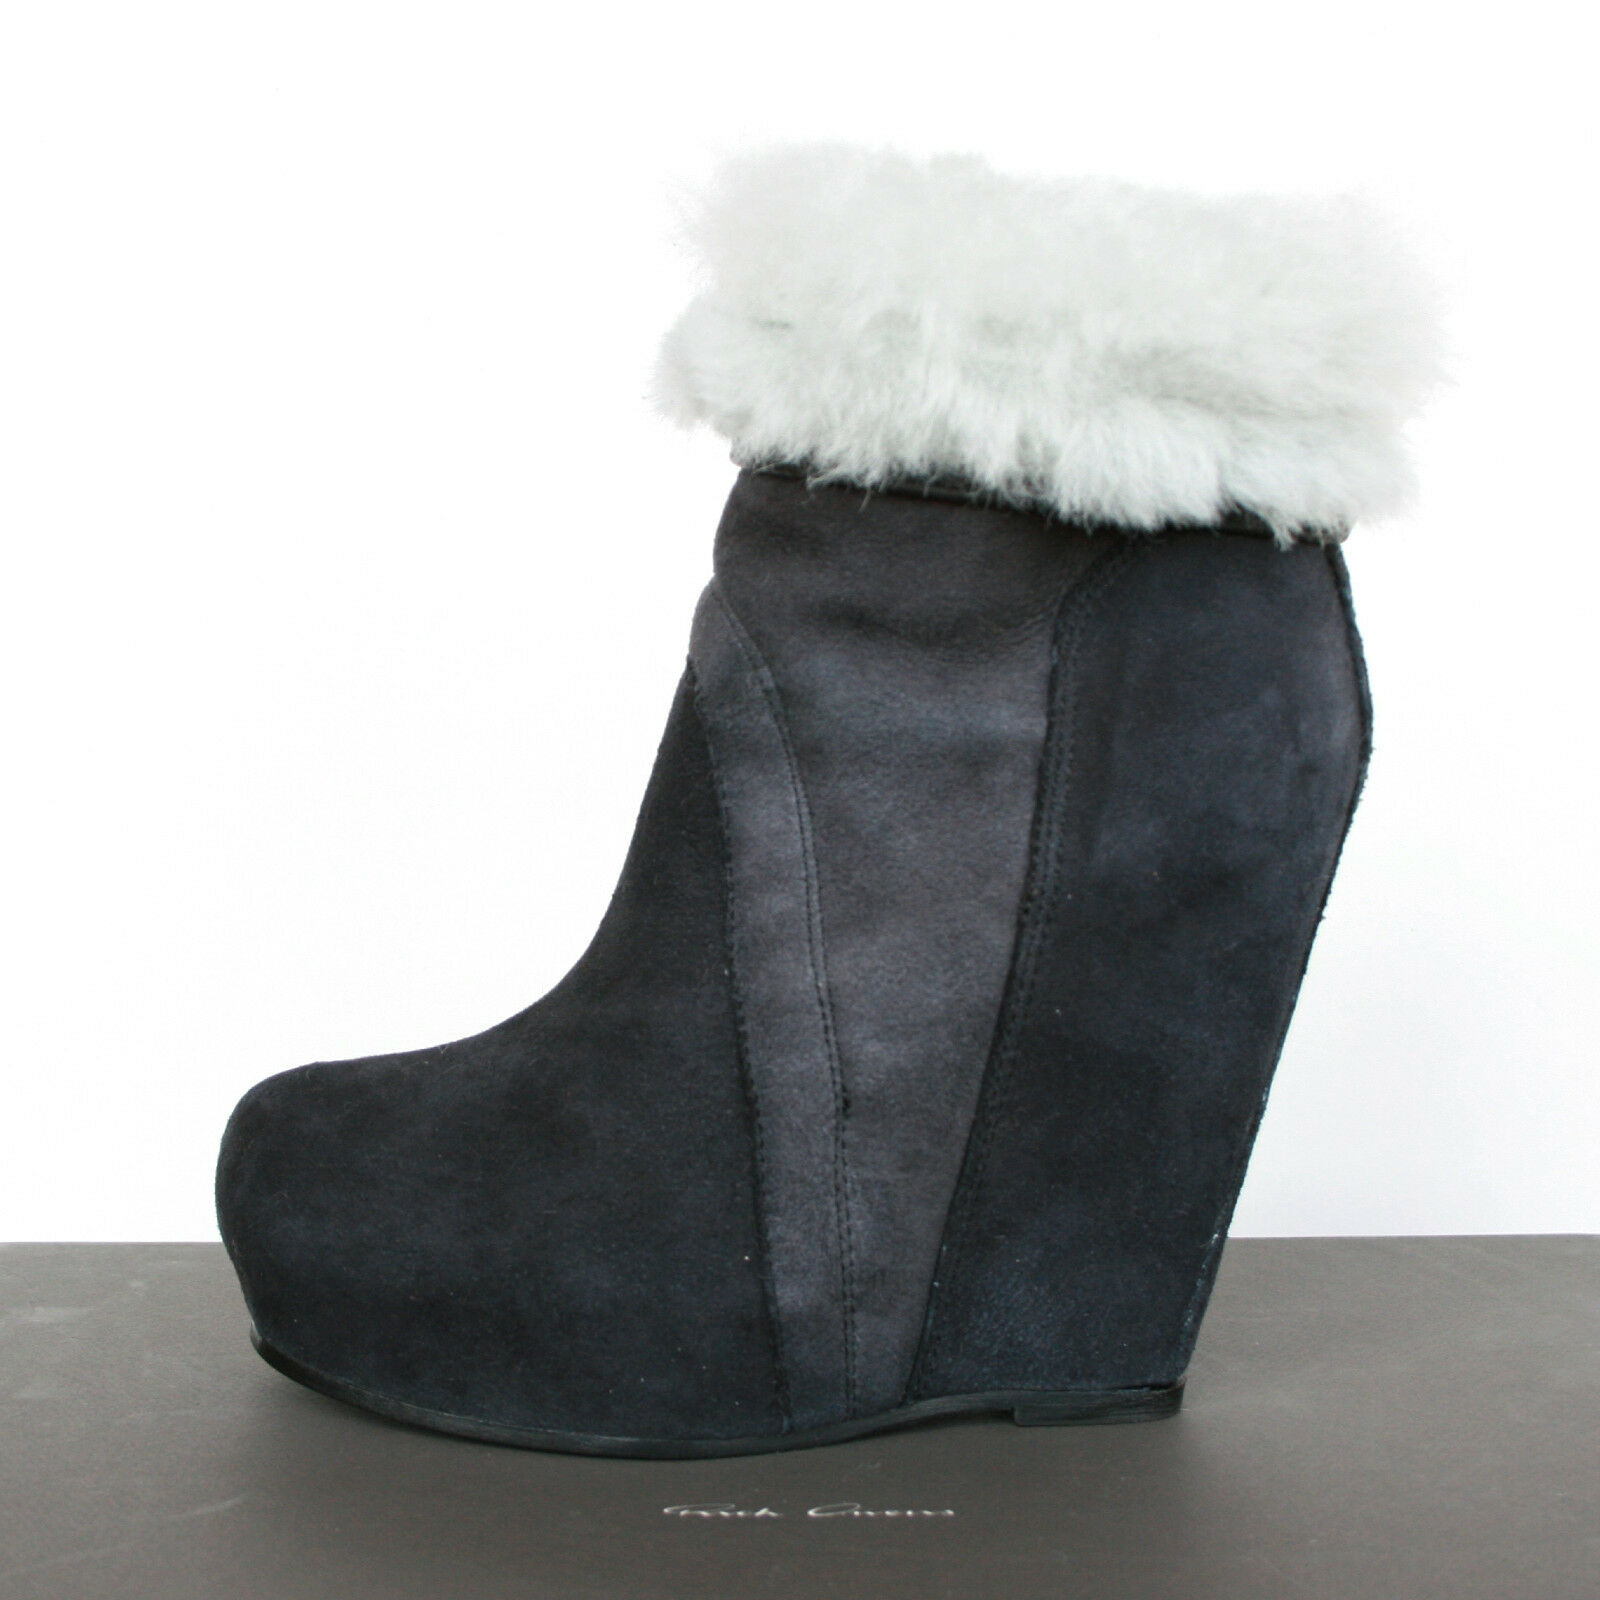 RICK OWENS  1,790 shearling shearling shearling fur high wedge heel pull on leather Stiefel 37   7 NEW 90c41c